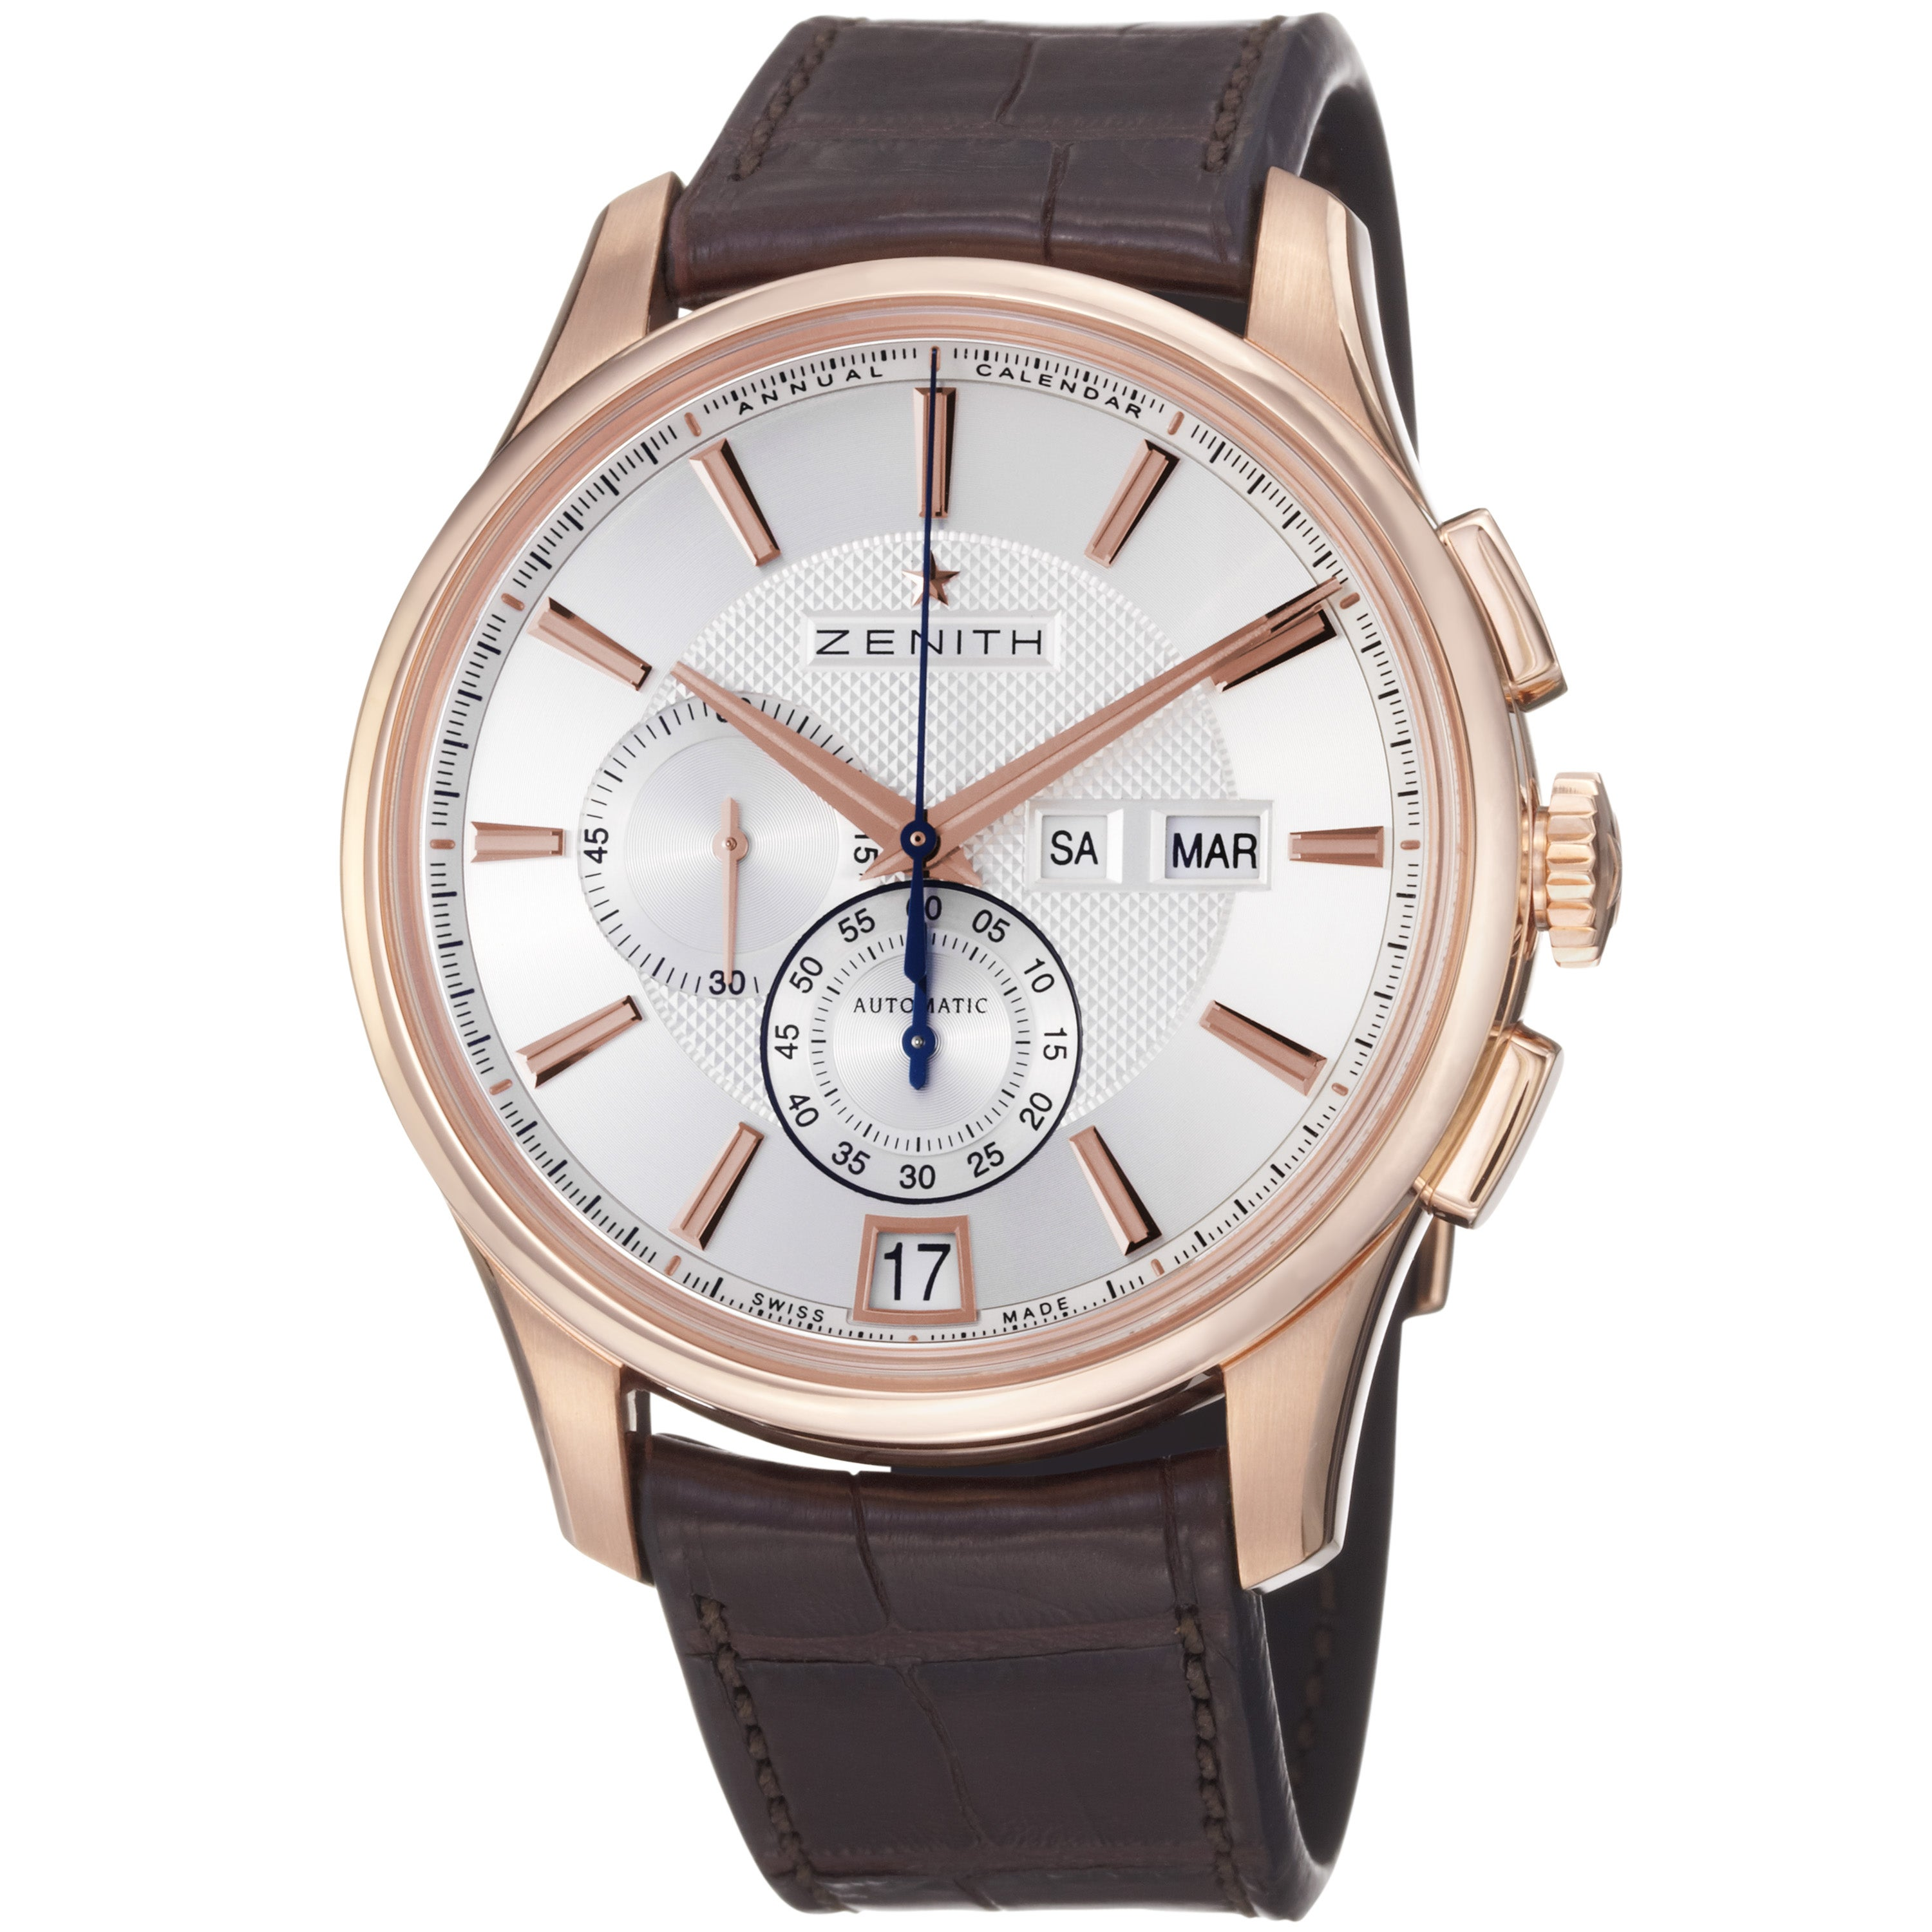 Zenith men 39 s 39 class winsor 39 rose gold leather strap chronograph watch for Leather watch for men